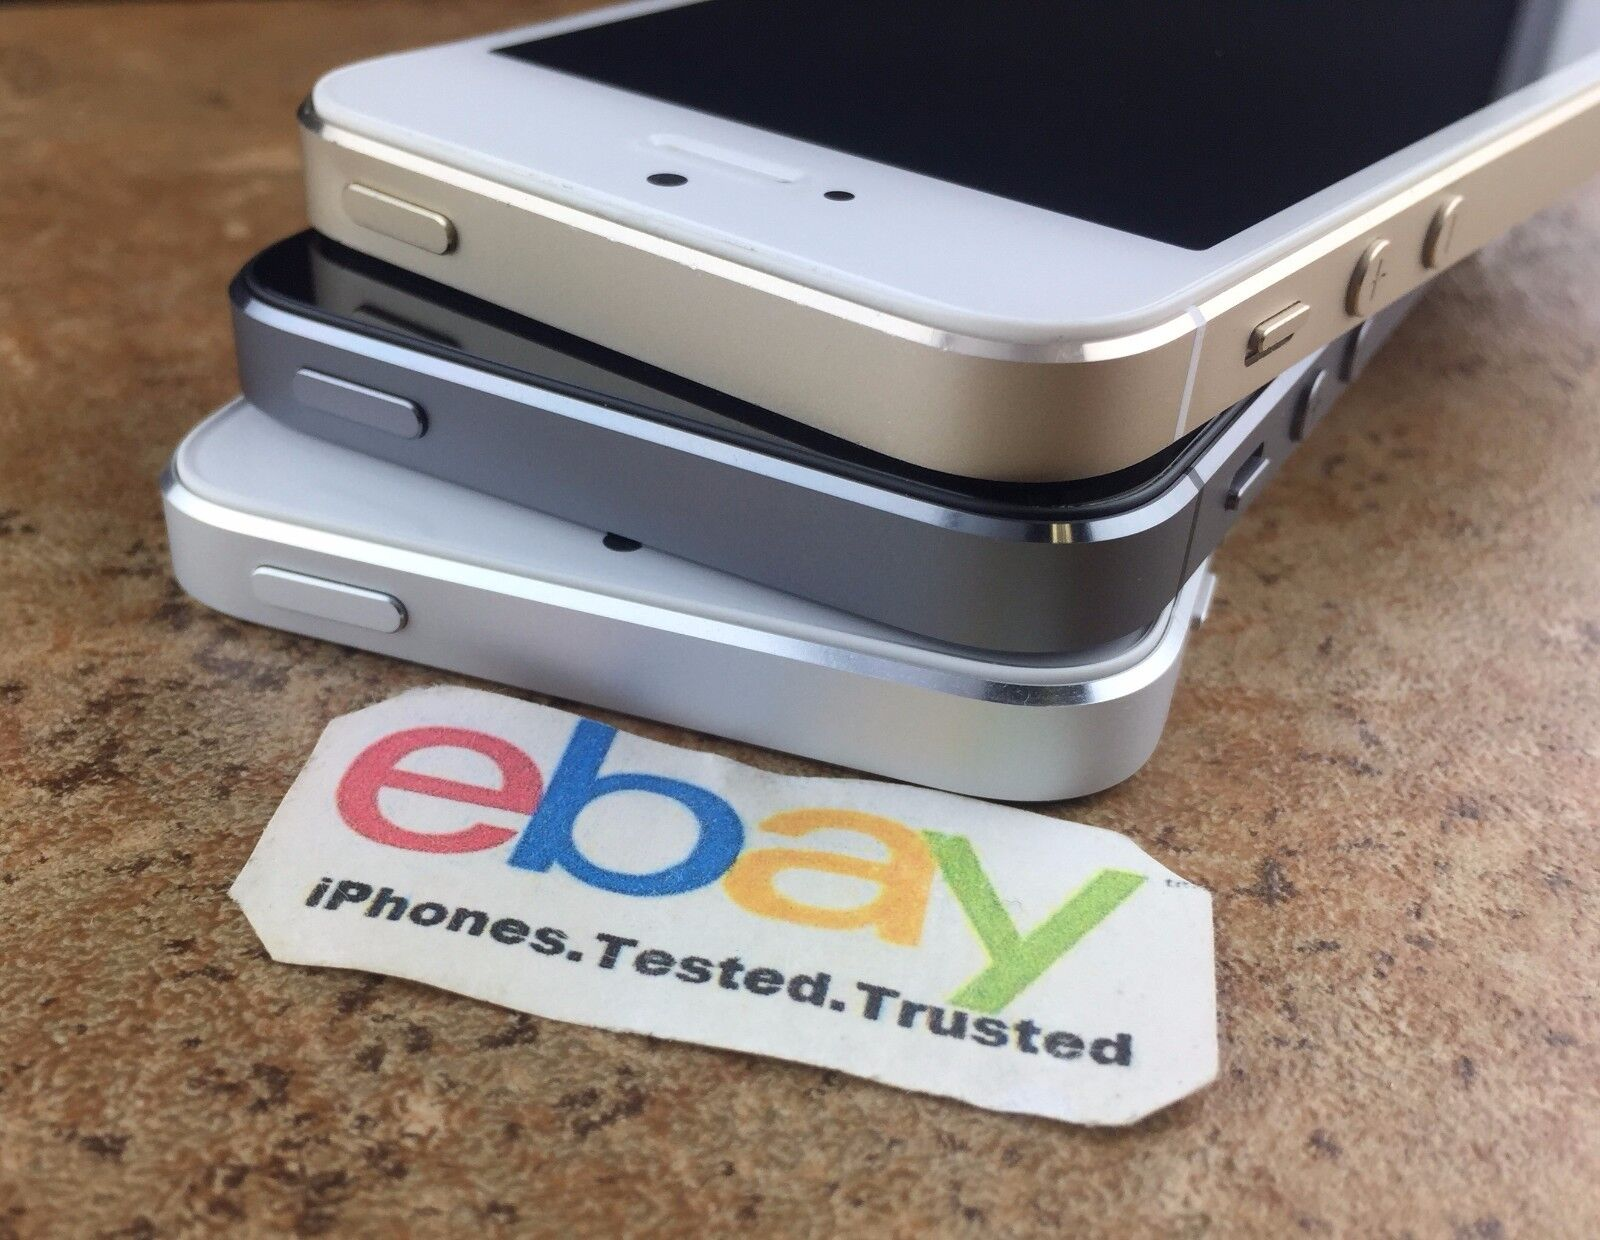 Iphone - Factory Unlocked Apple iPhone 5S Gold Silver Space Gray ATT TMobile 16/32GB/64GB